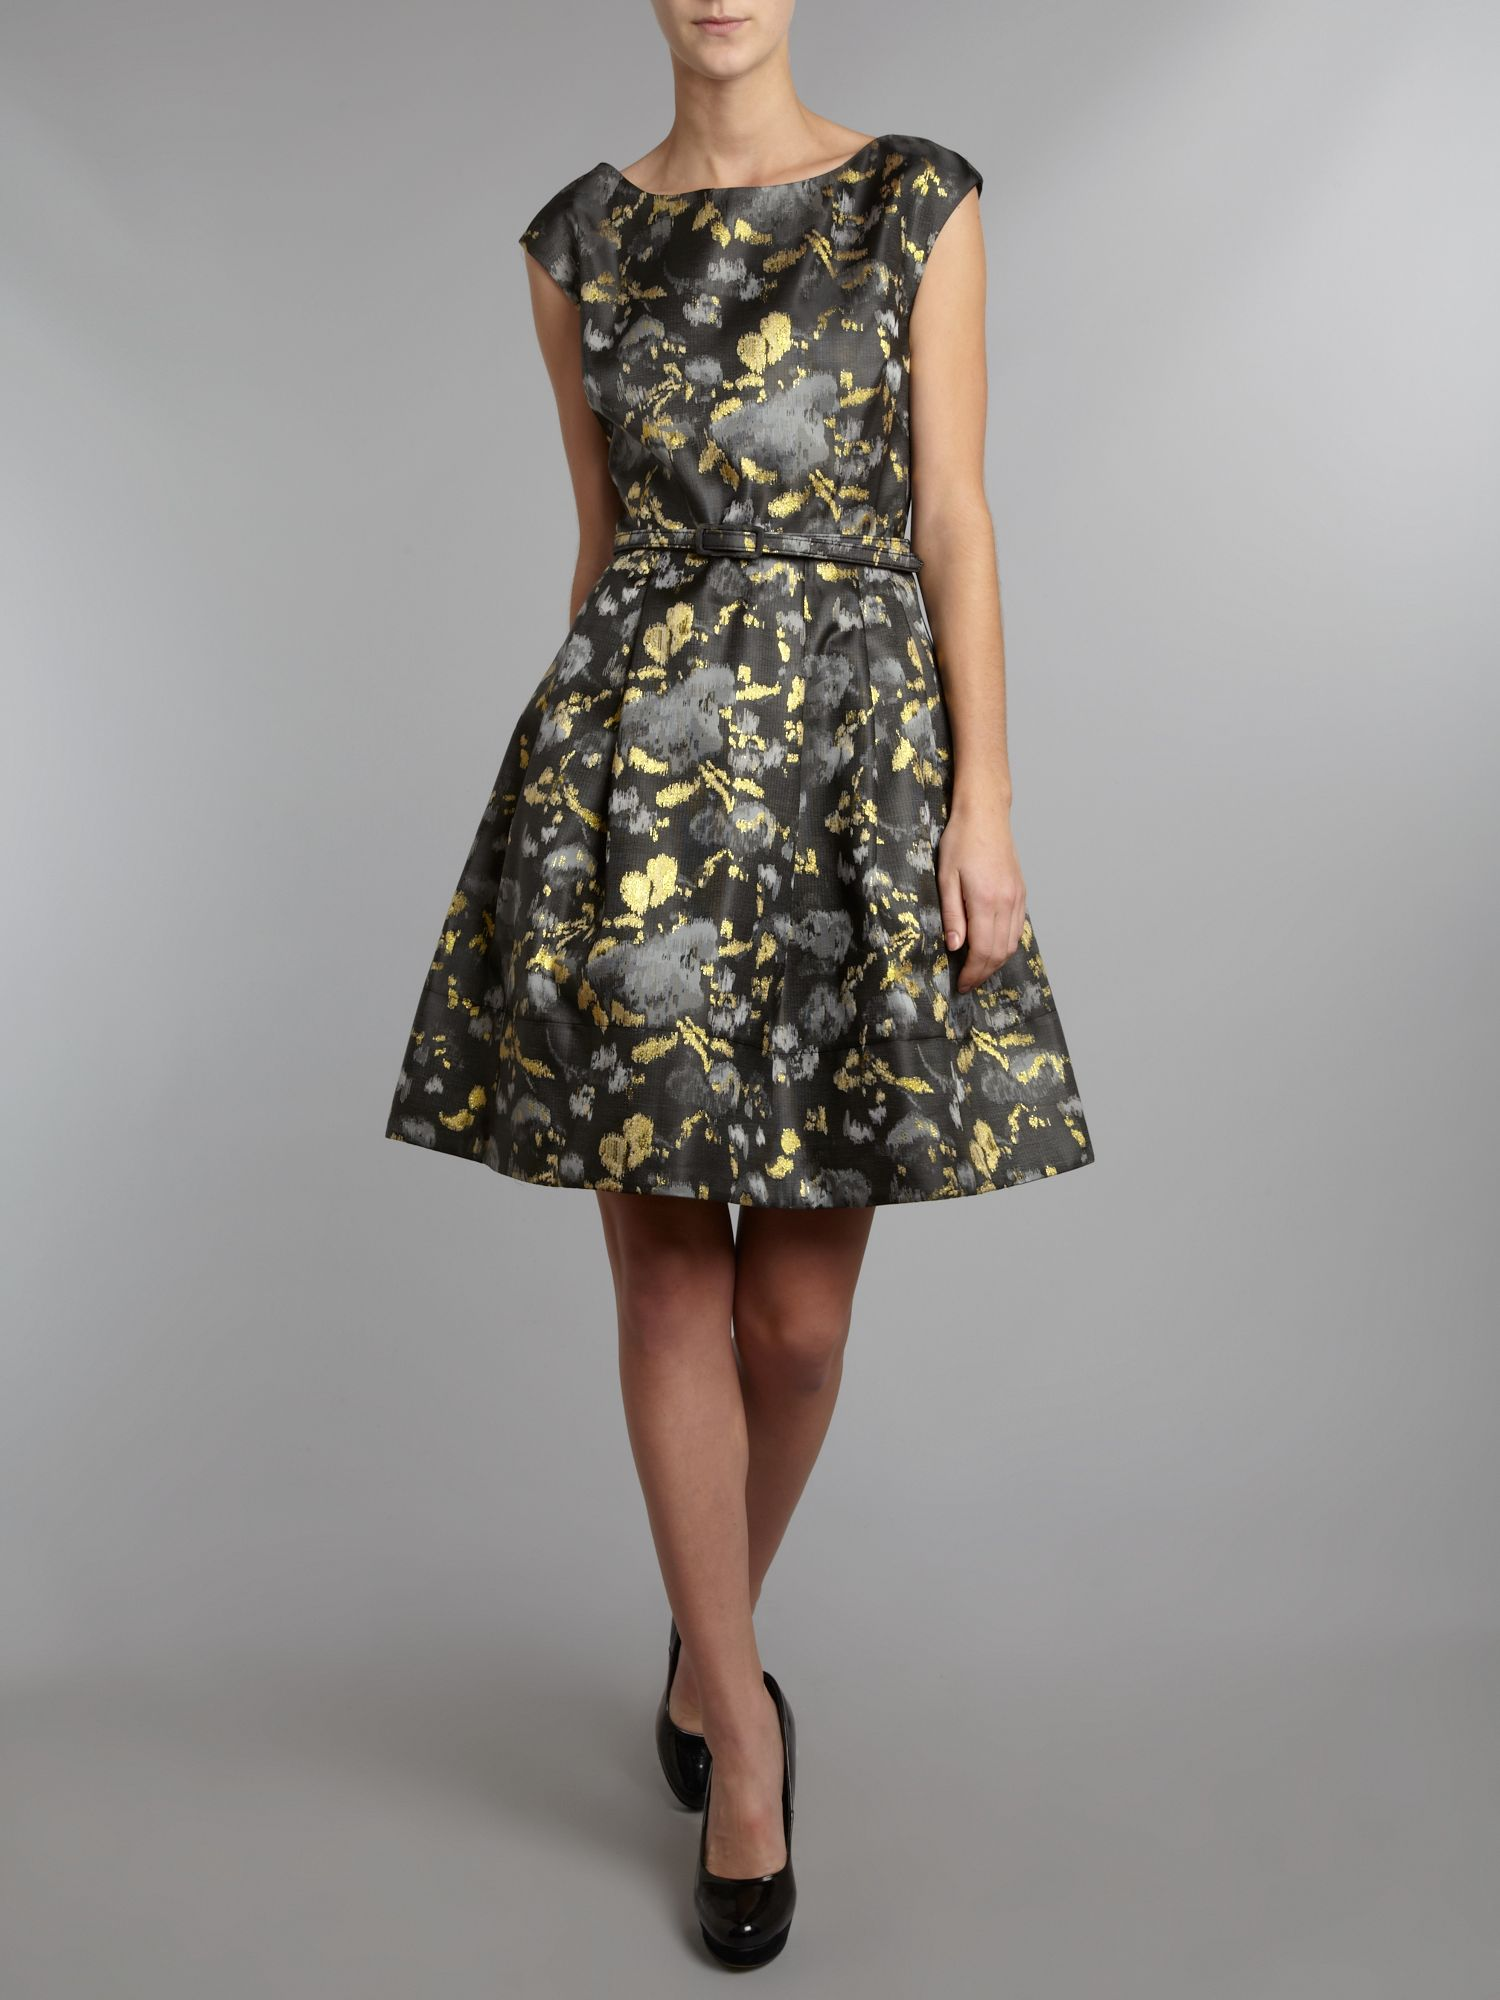 yellow dress house of fraser untold